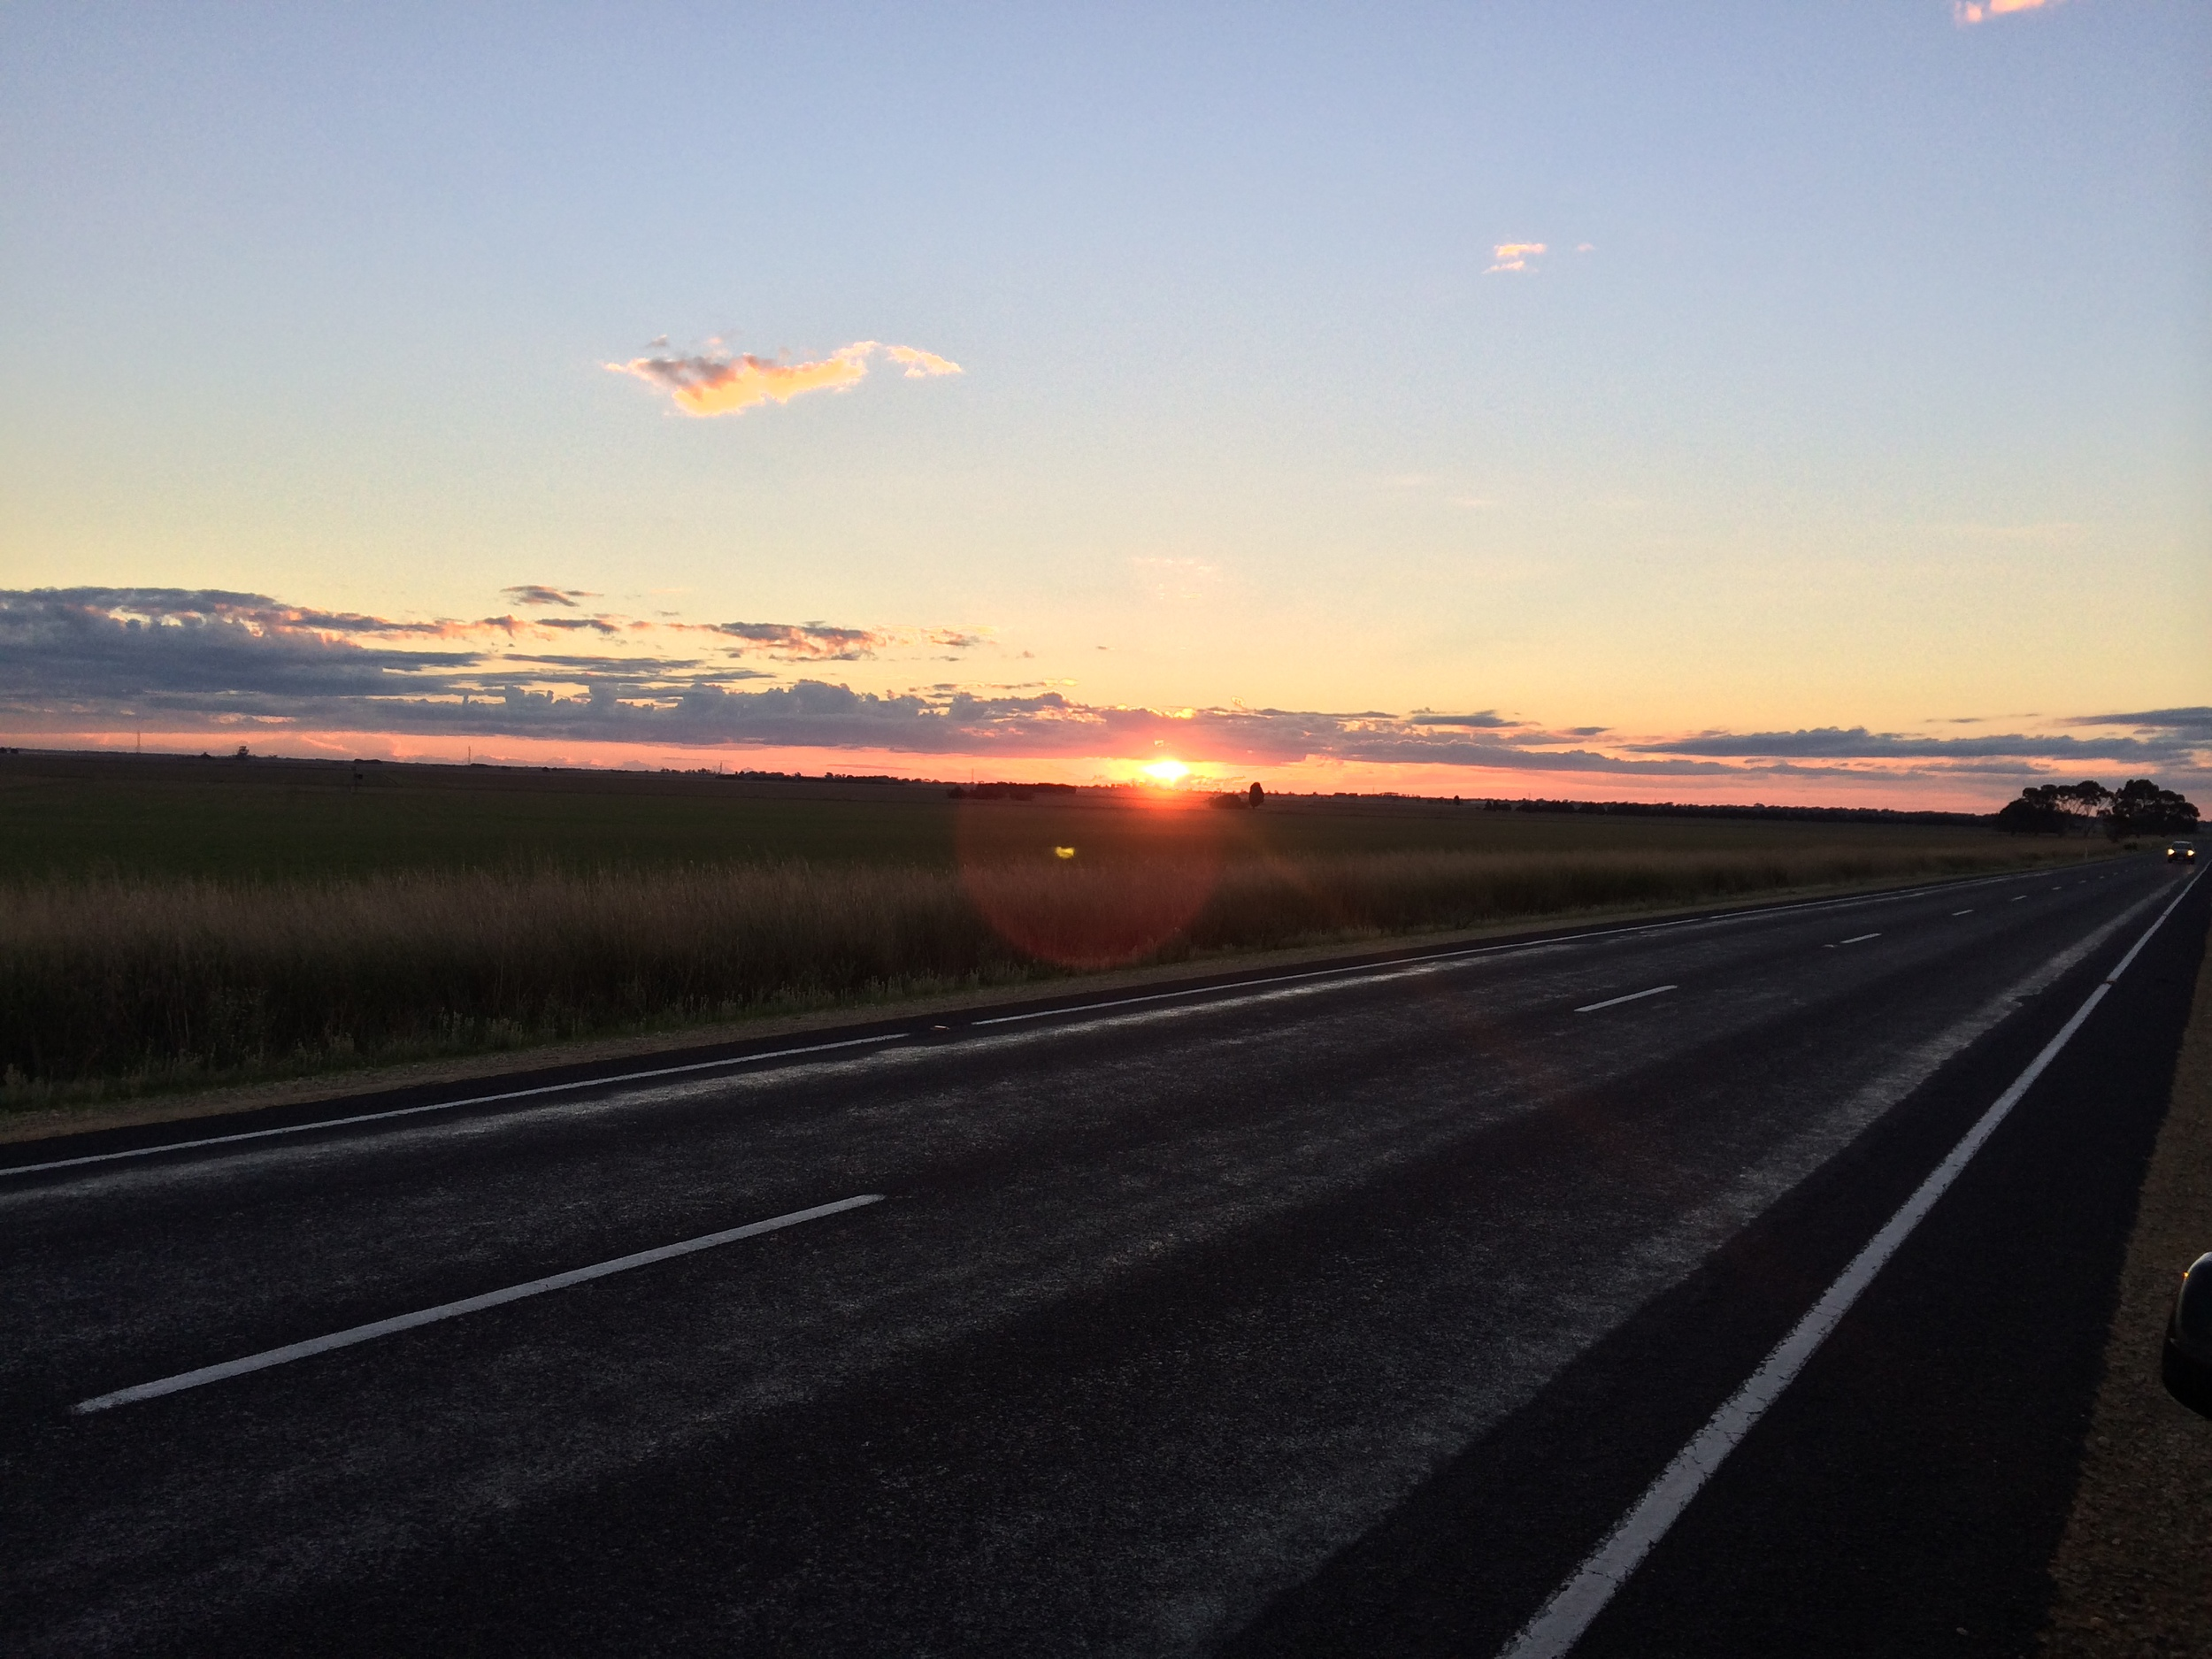 The setting sun in between Penola and Adelaide.